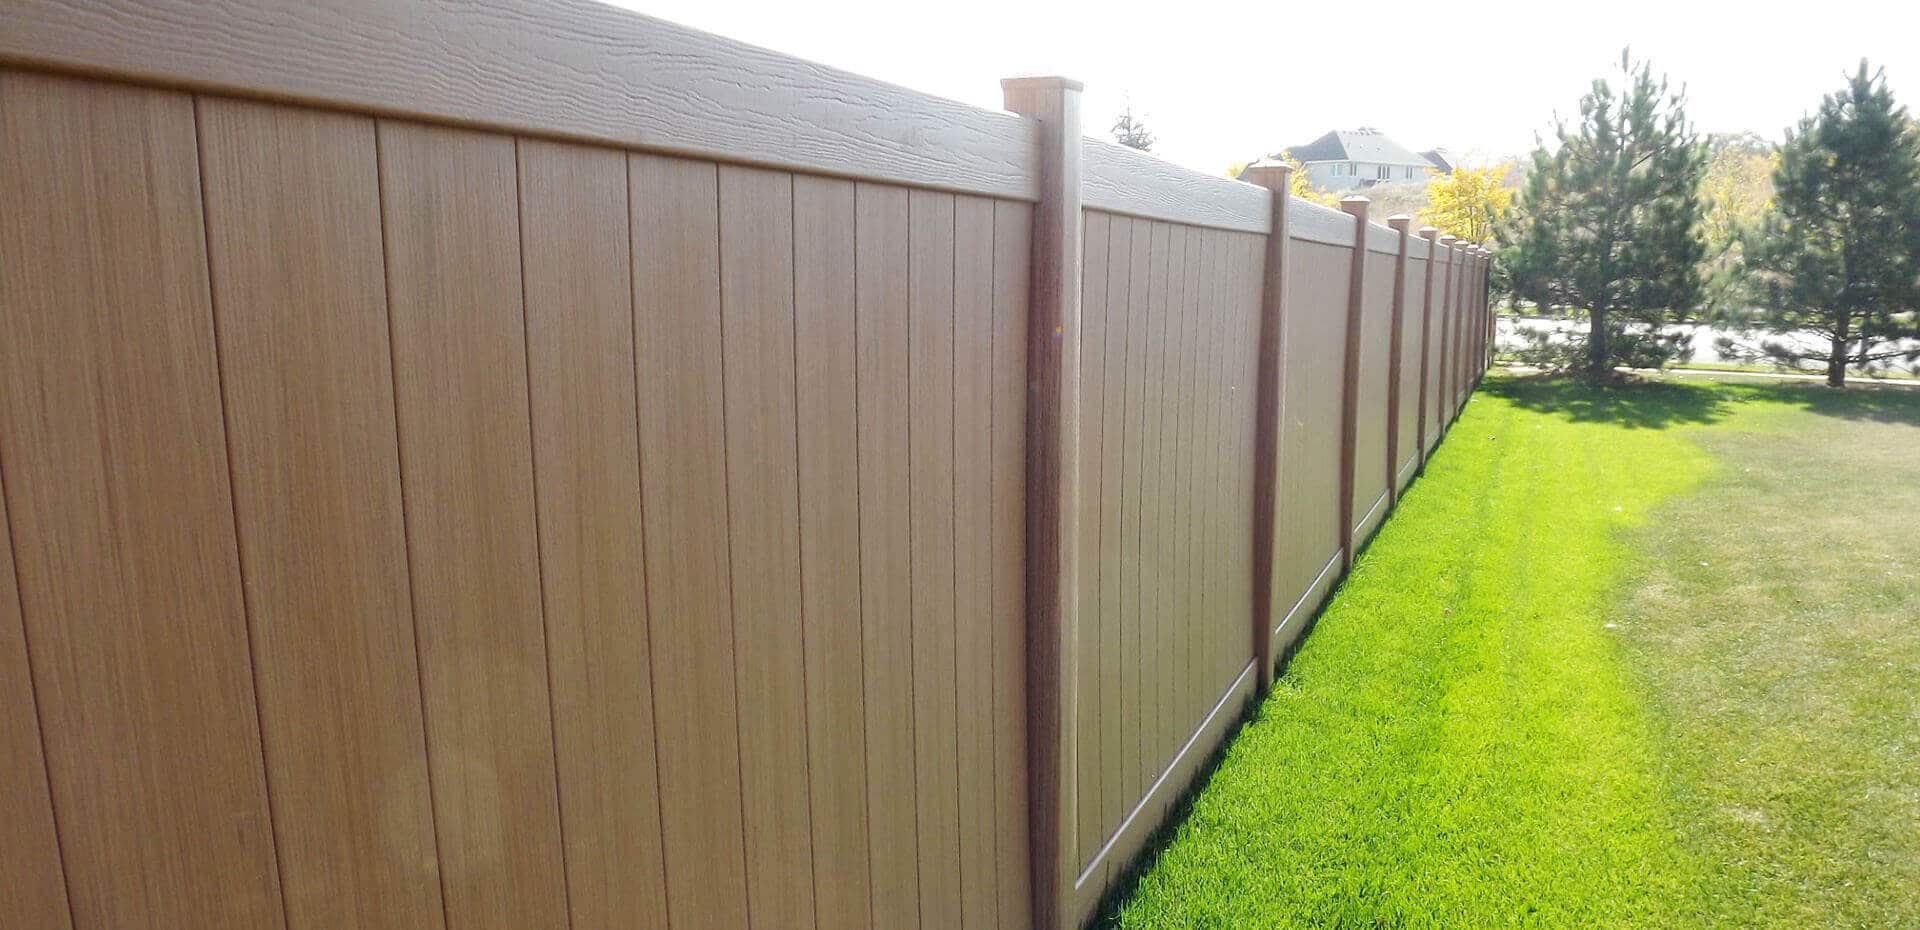 Wood fence in st paul lakeville twin cities woodbury cottage simulated wood fences baanklon Gallery